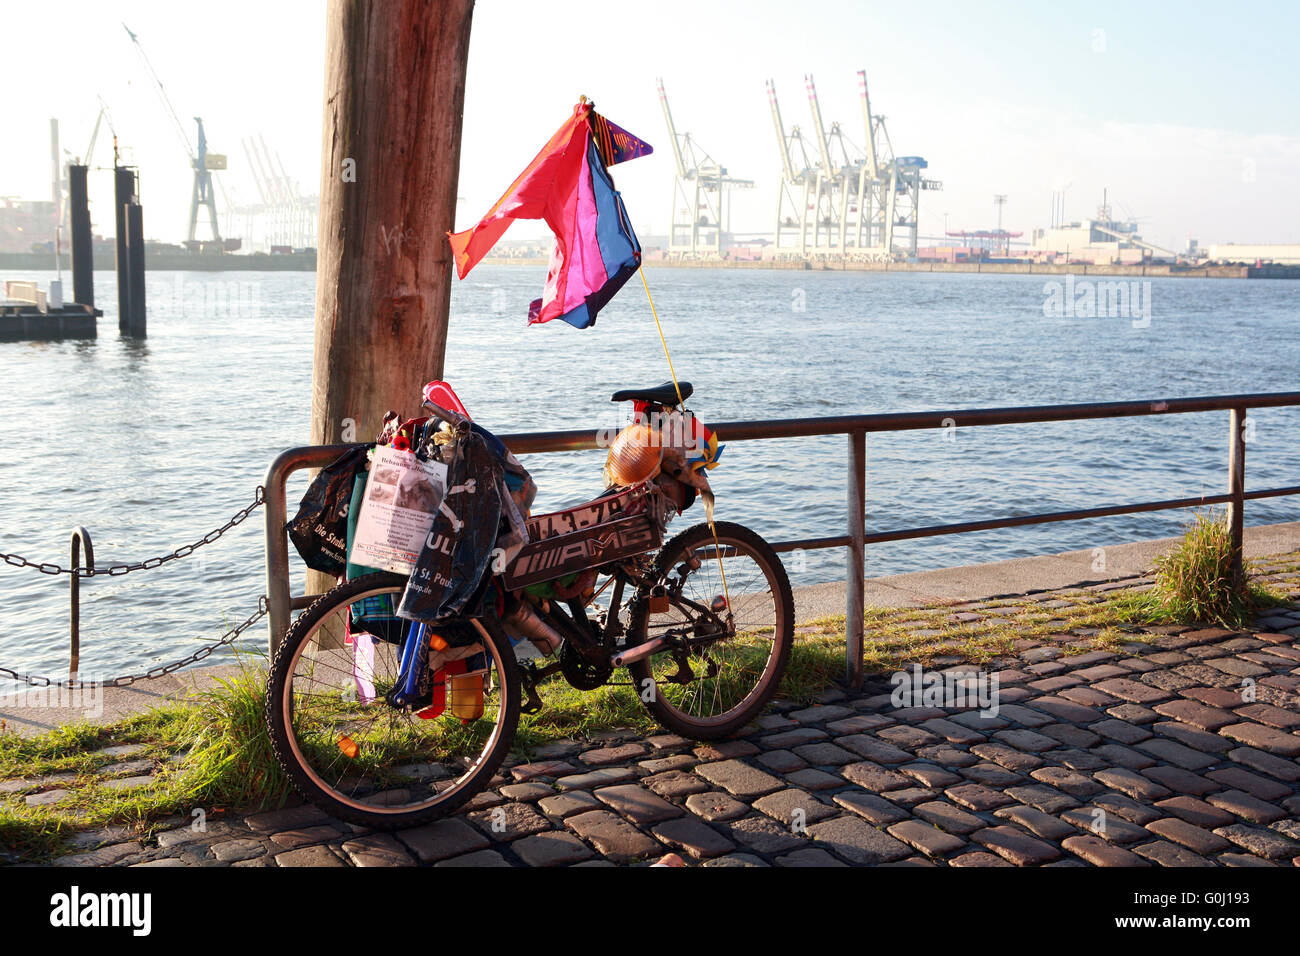 Bicycle with the household of a homeles person - Stock Image